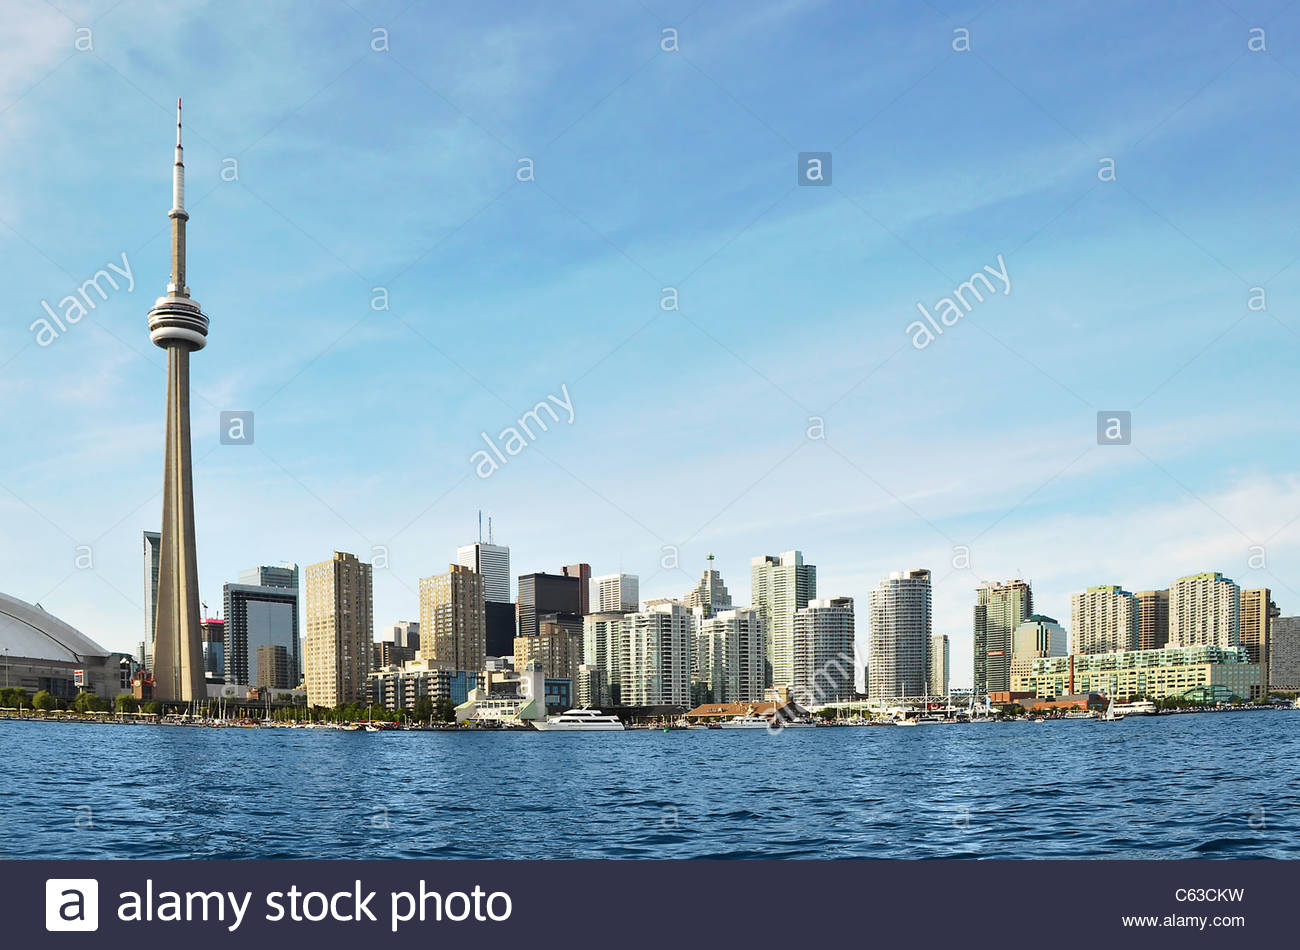 Toronto Skyline. Broad view of the majestic metropolis. Display of modern architecture. CN Tower as part of the - Stock Image